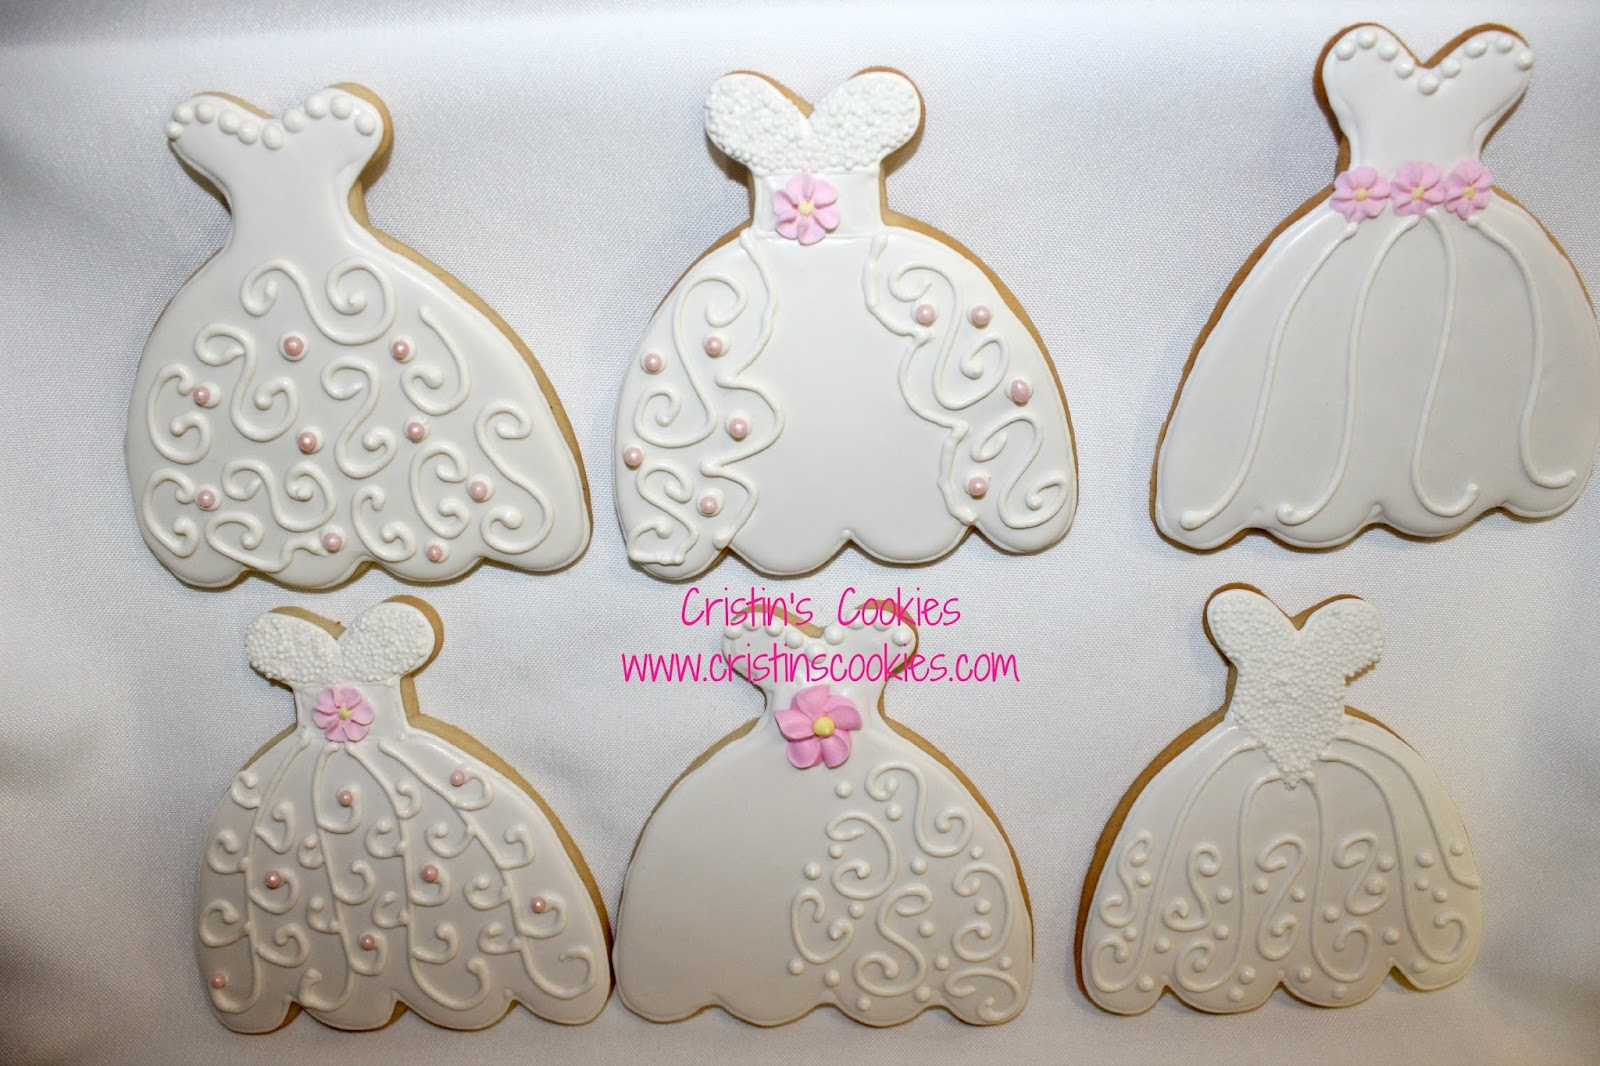 07 wedding dress cookie cutter Wedding Dress Cookie Cutter Available HERE